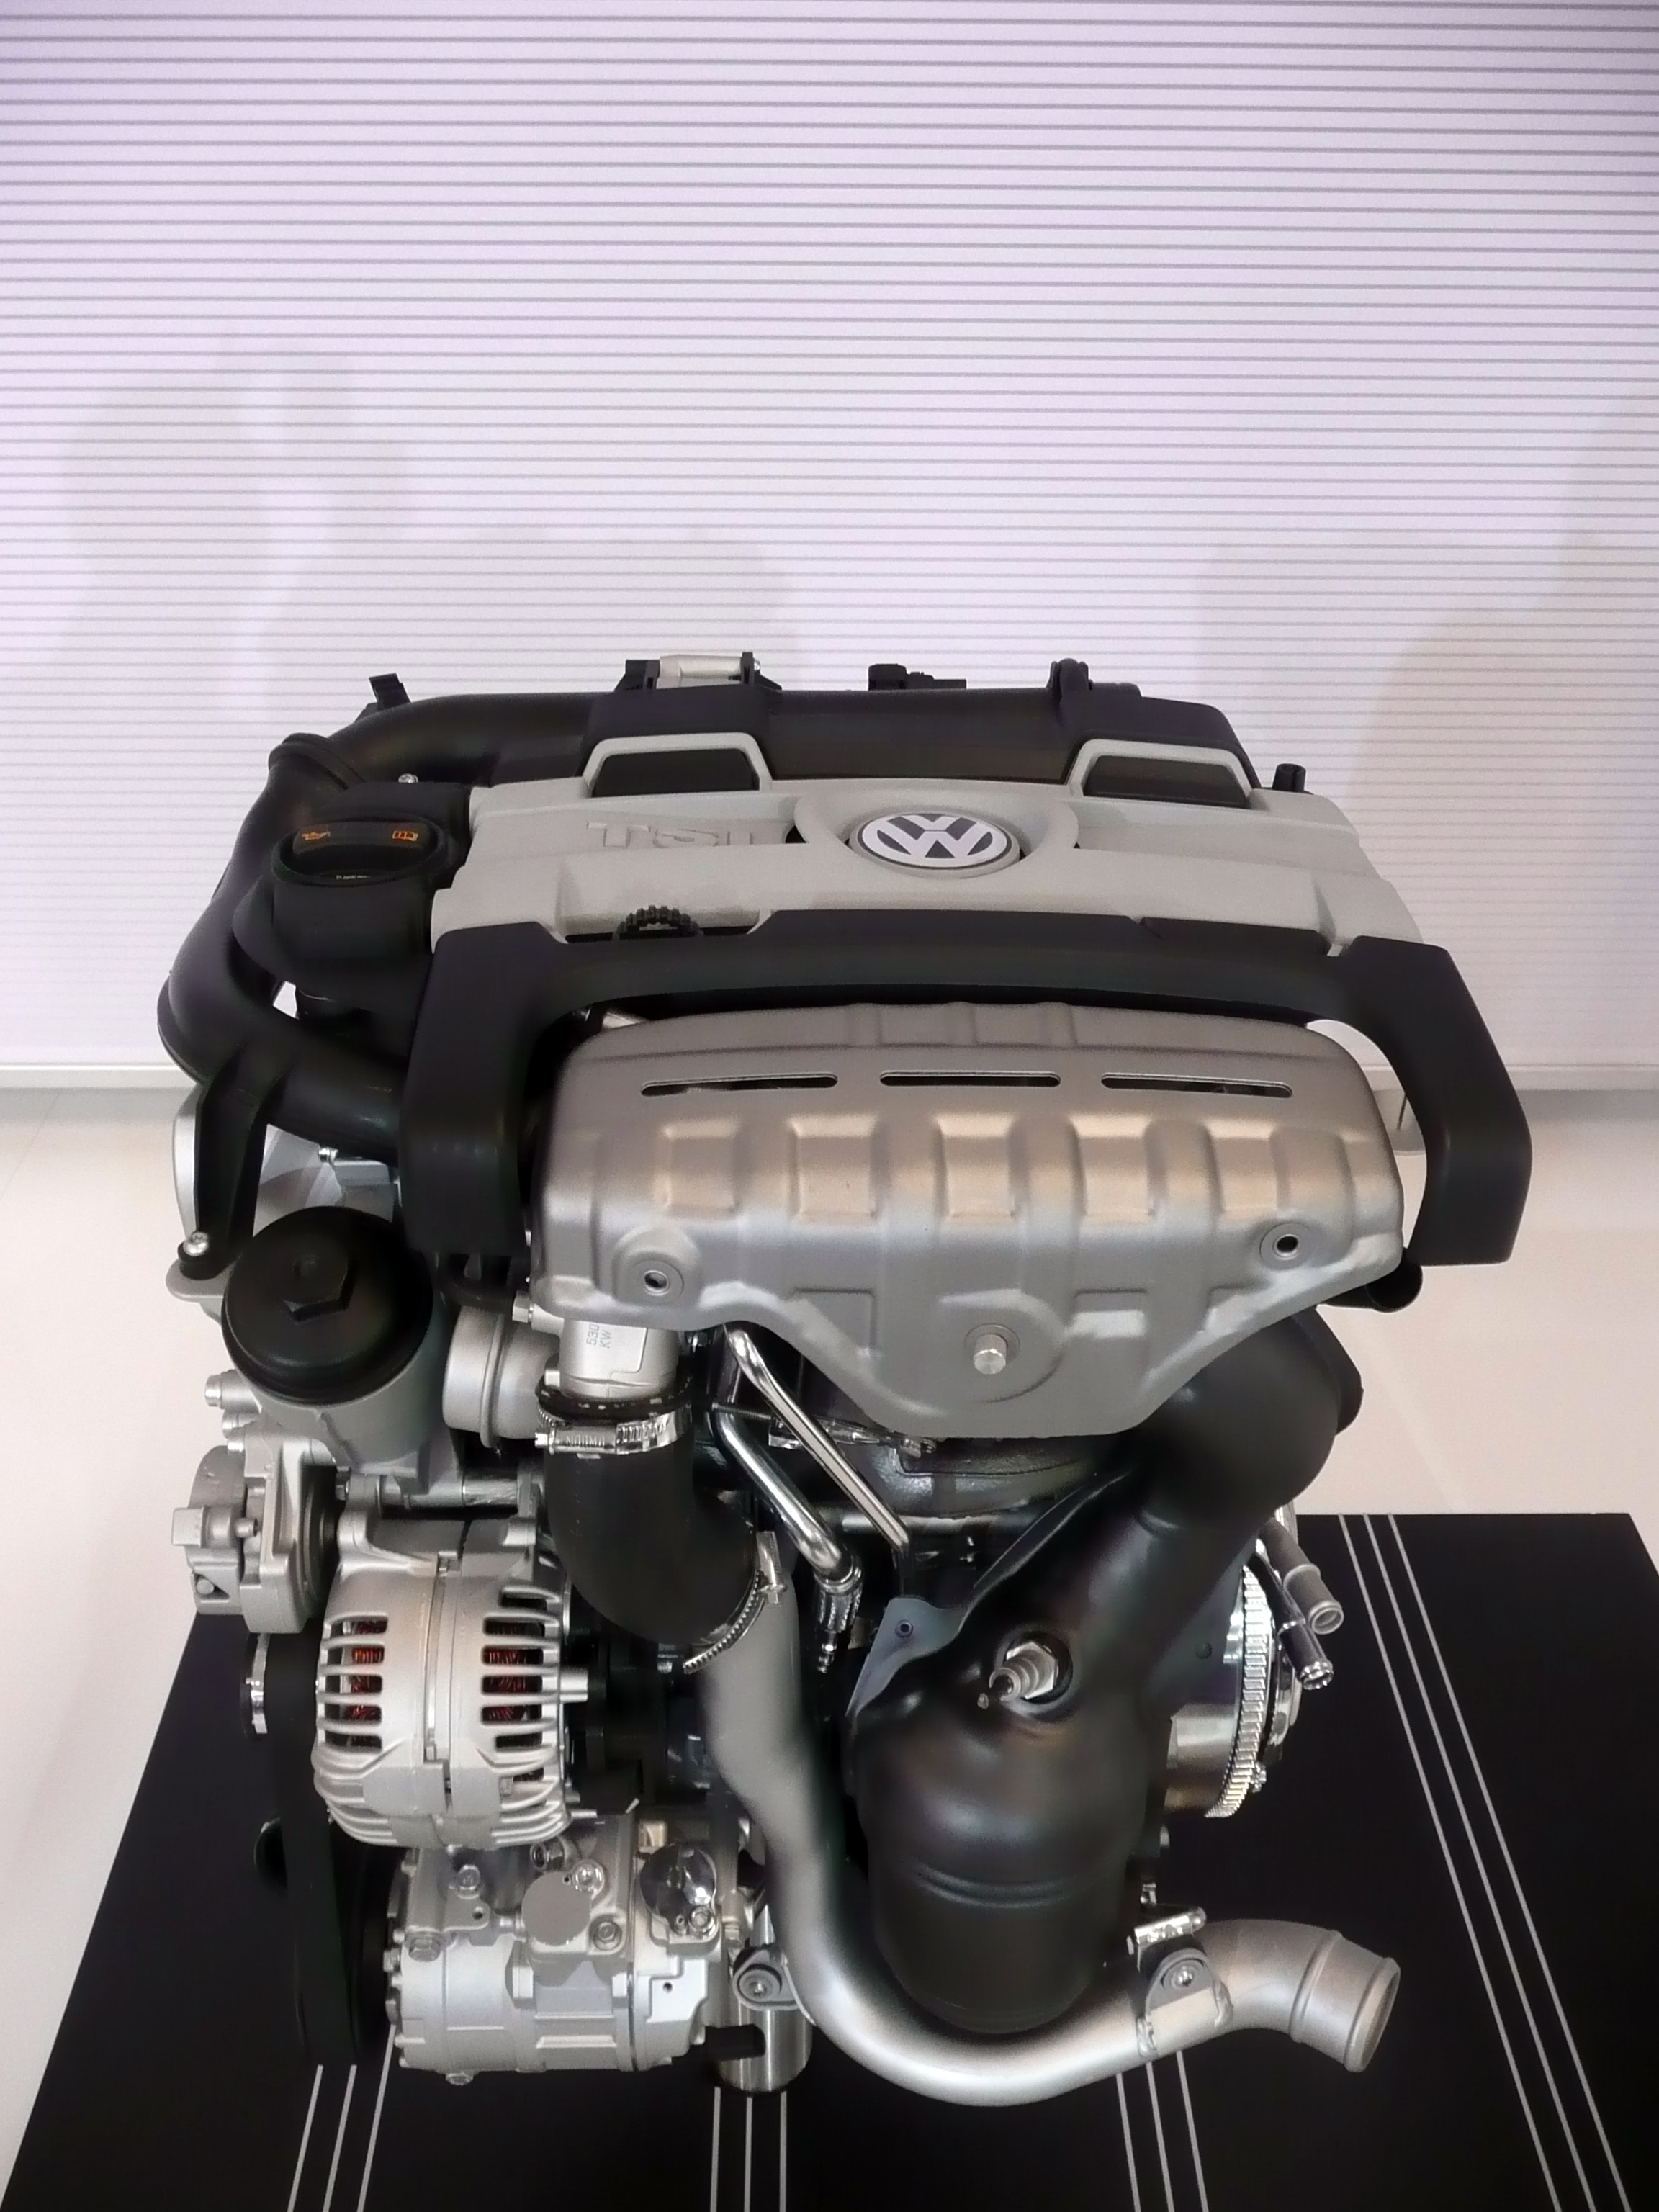 list of volkswagen group petrol engines wikipedia 2001 VW Jetta Engine Diagram